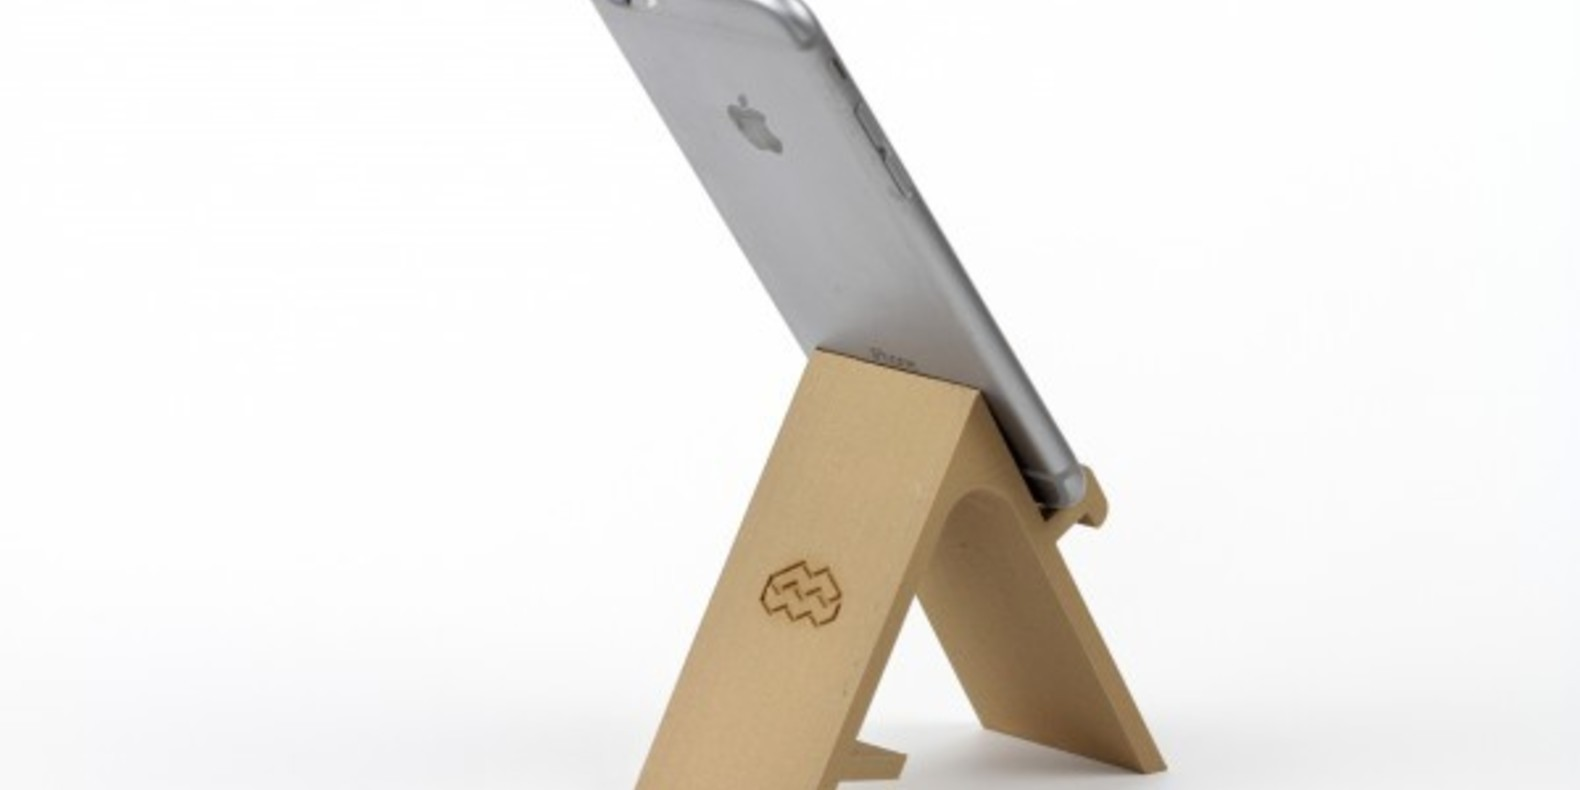 stand-iphone-holder-support-smartphone-imprimé-en-3D-cults-5.jpg